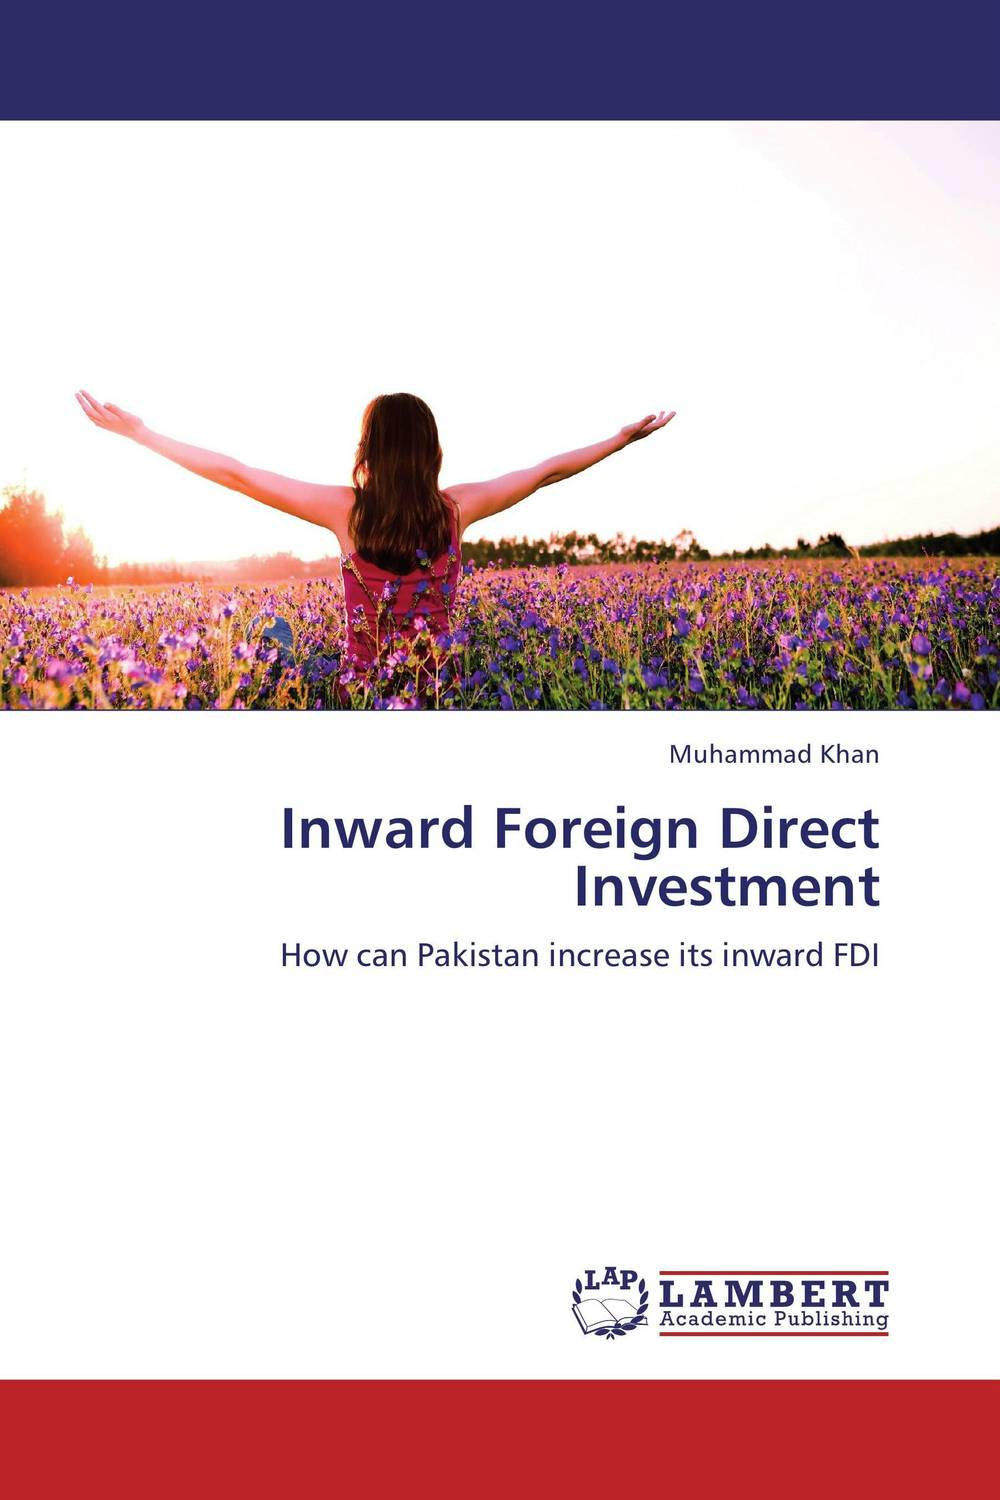 Inward Foreign Direct Investment the corals of pakistan